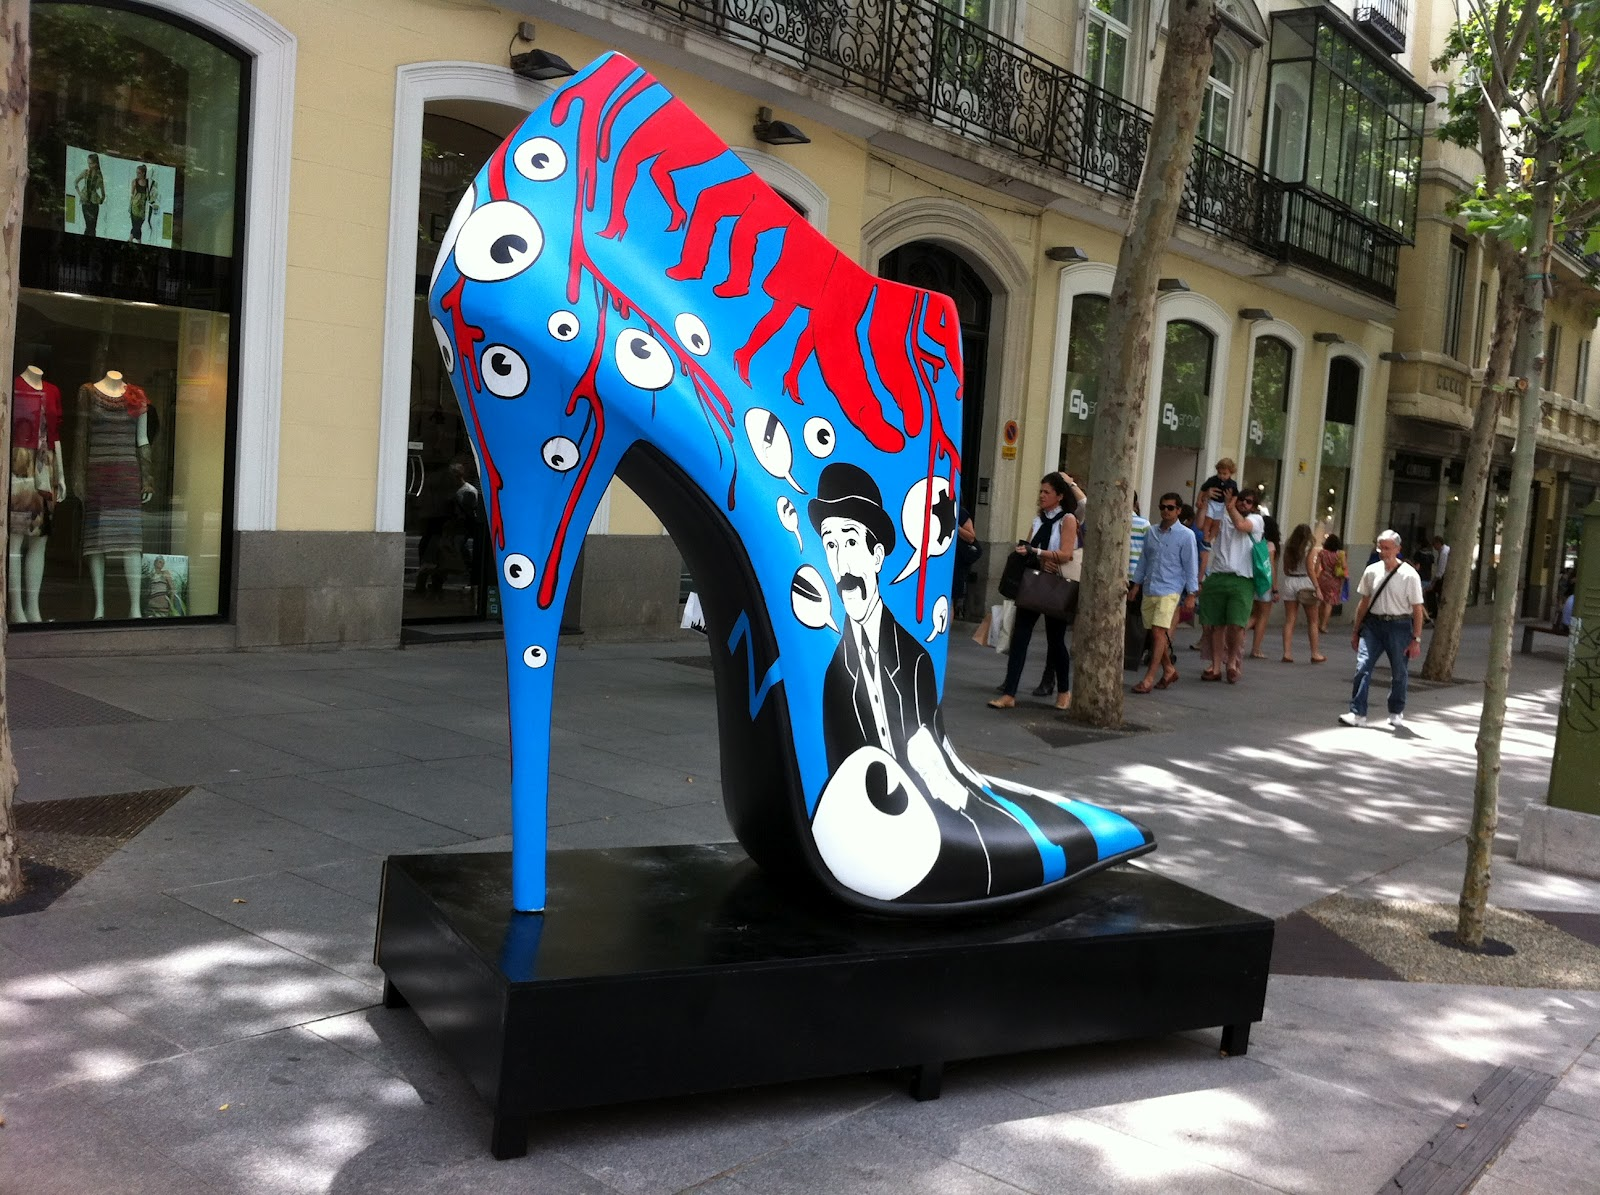 shoes-street-art-blog-da-lari-exposiçao-lari-duarte-art-arte-madrid